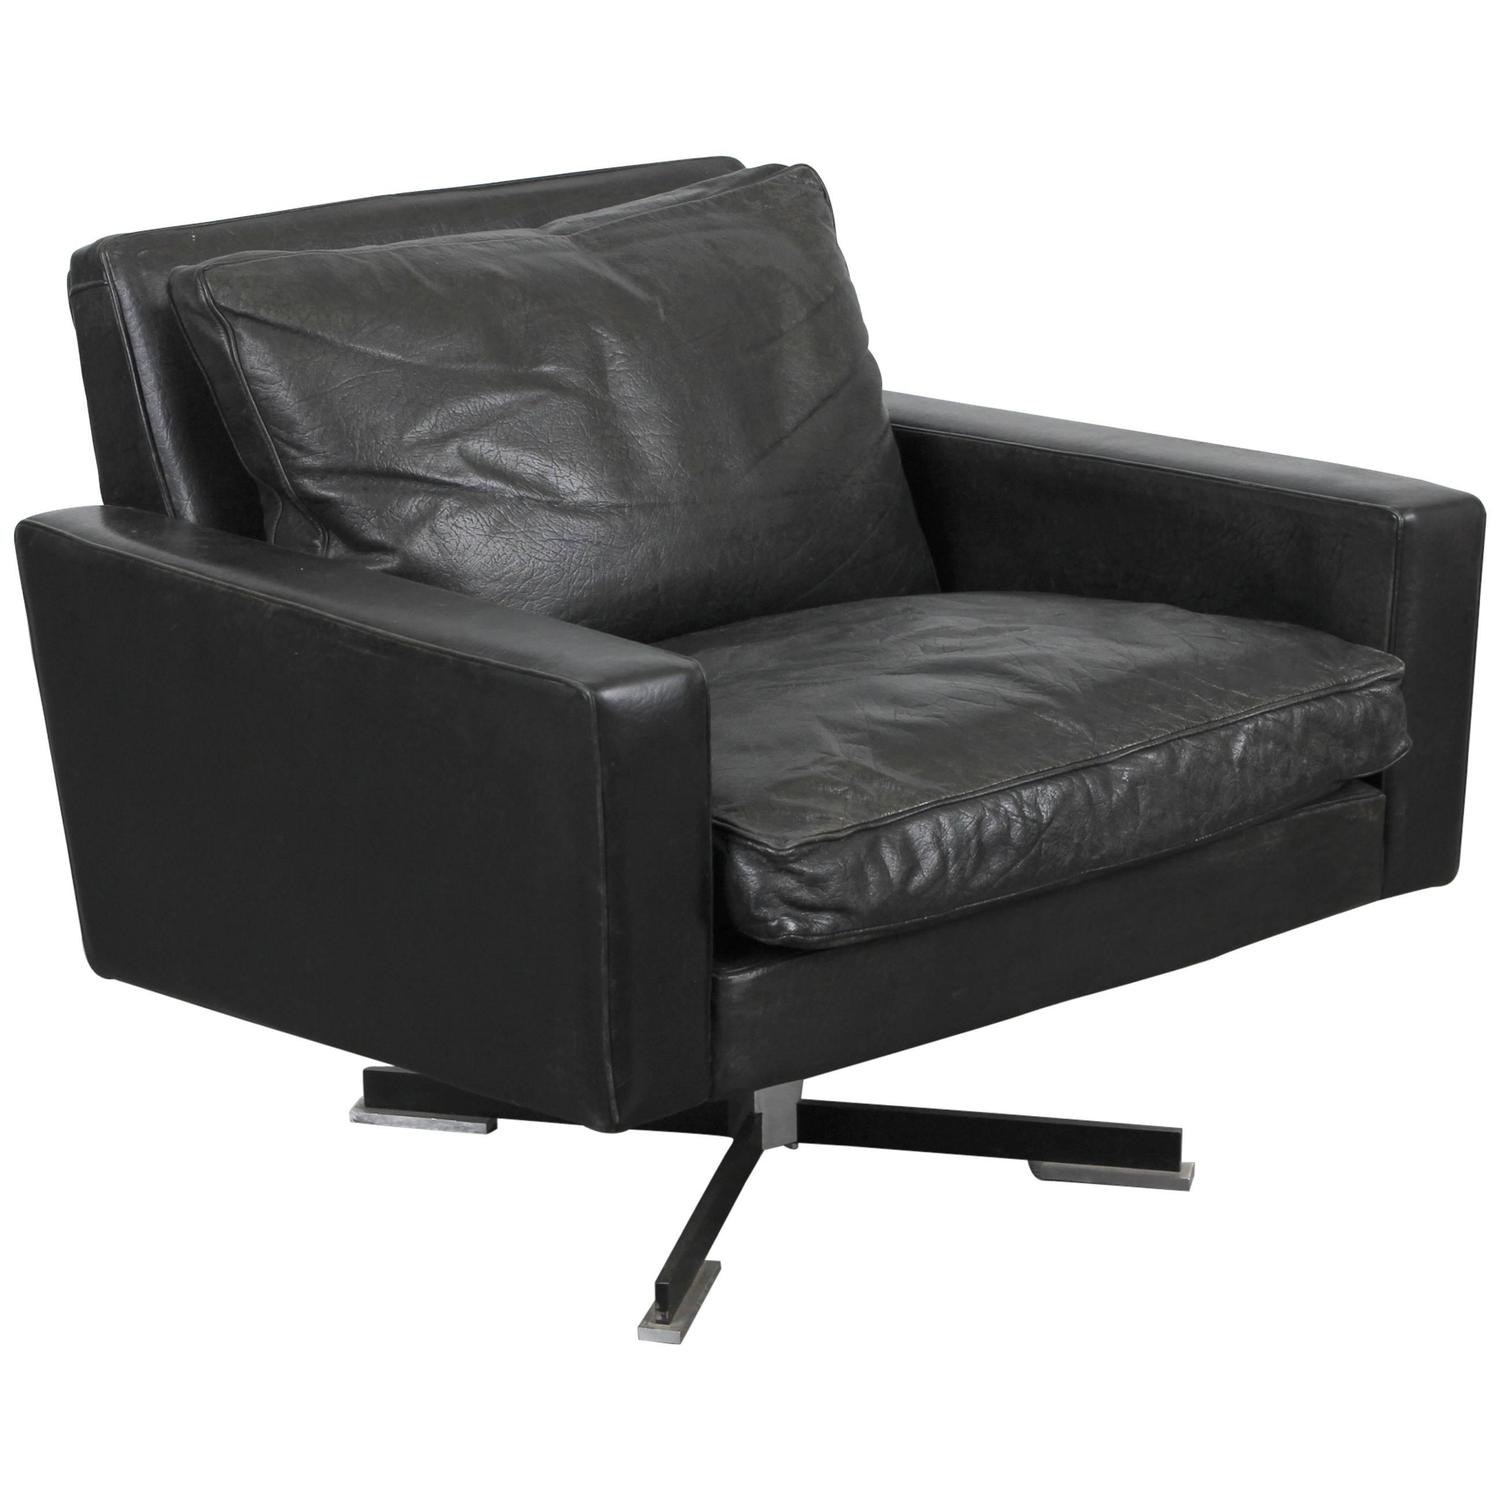 Mid Century Modern Black Leather Swivel Chair At 1Stdibs Throughout Leather Black Swivel Chairs (View 5 of 25)